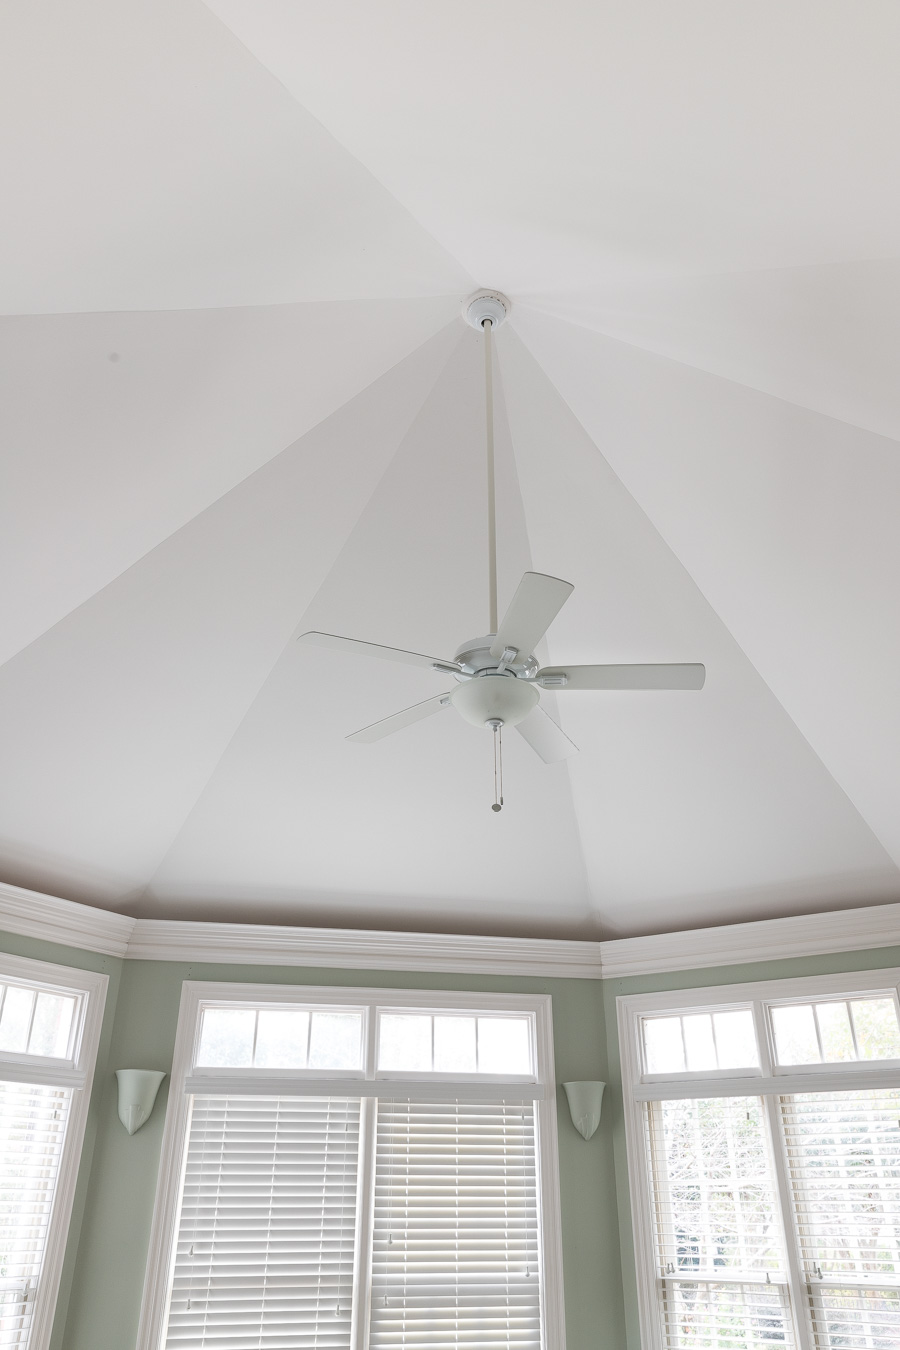 Love the design of this octagonal ceiling!